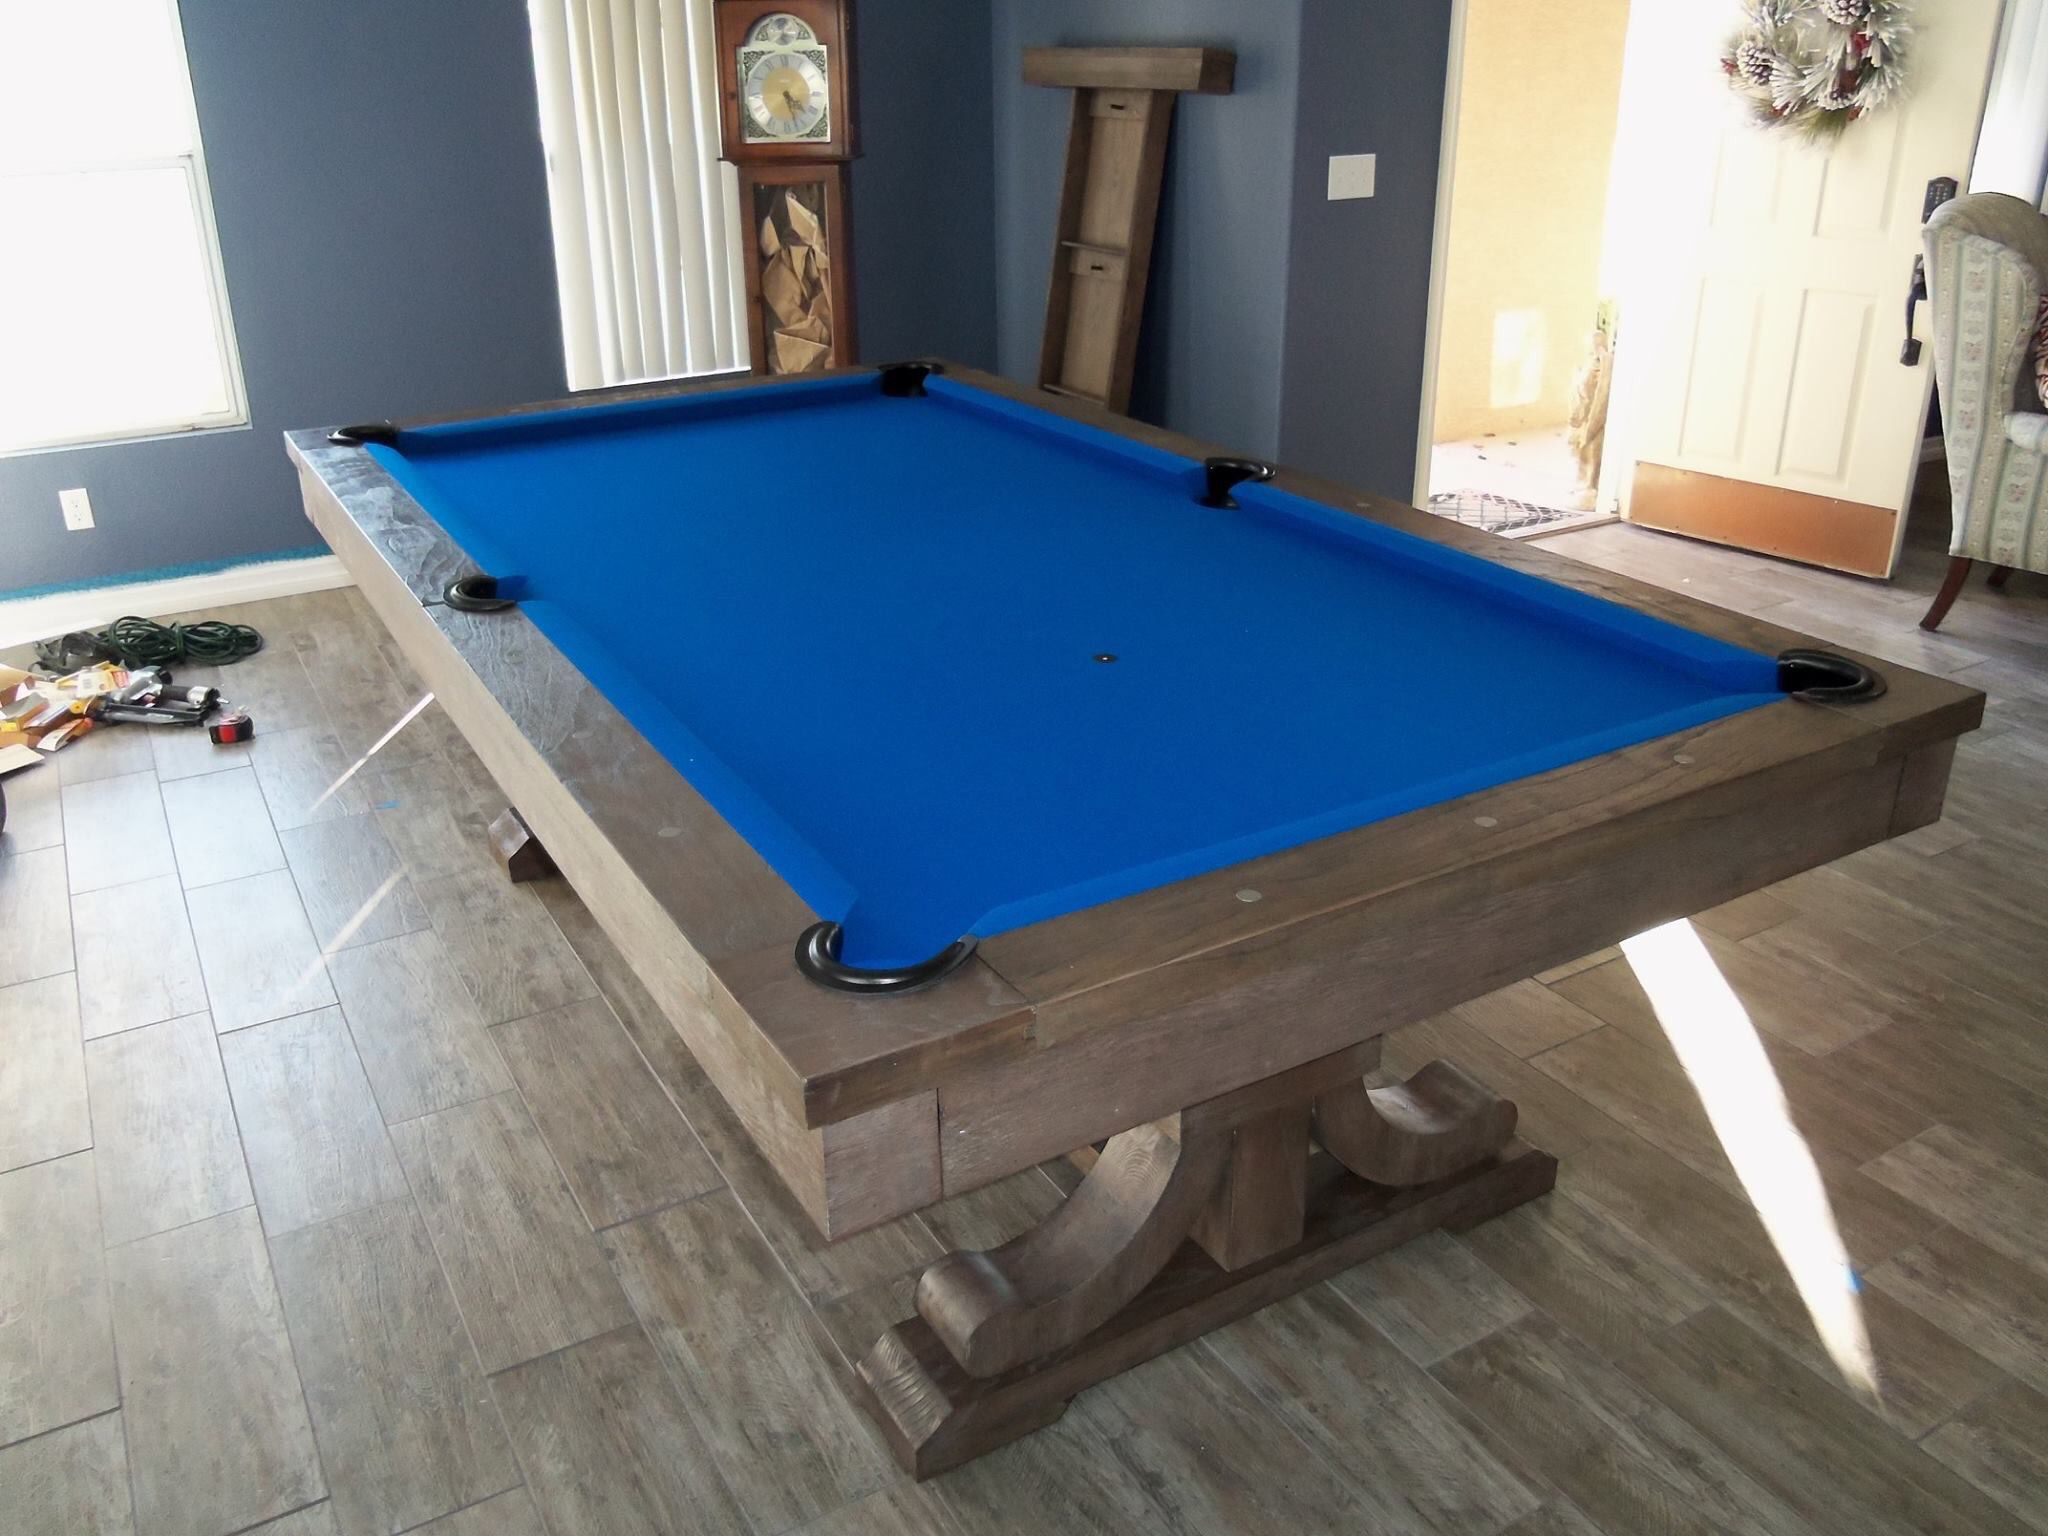 Our Atlantis Pool Table With Custom Blue Felt Atlantis Pool Tables Have A Conversion Top To Use As A Dining Table Atlantis Pools Billiard Factory Pool Table